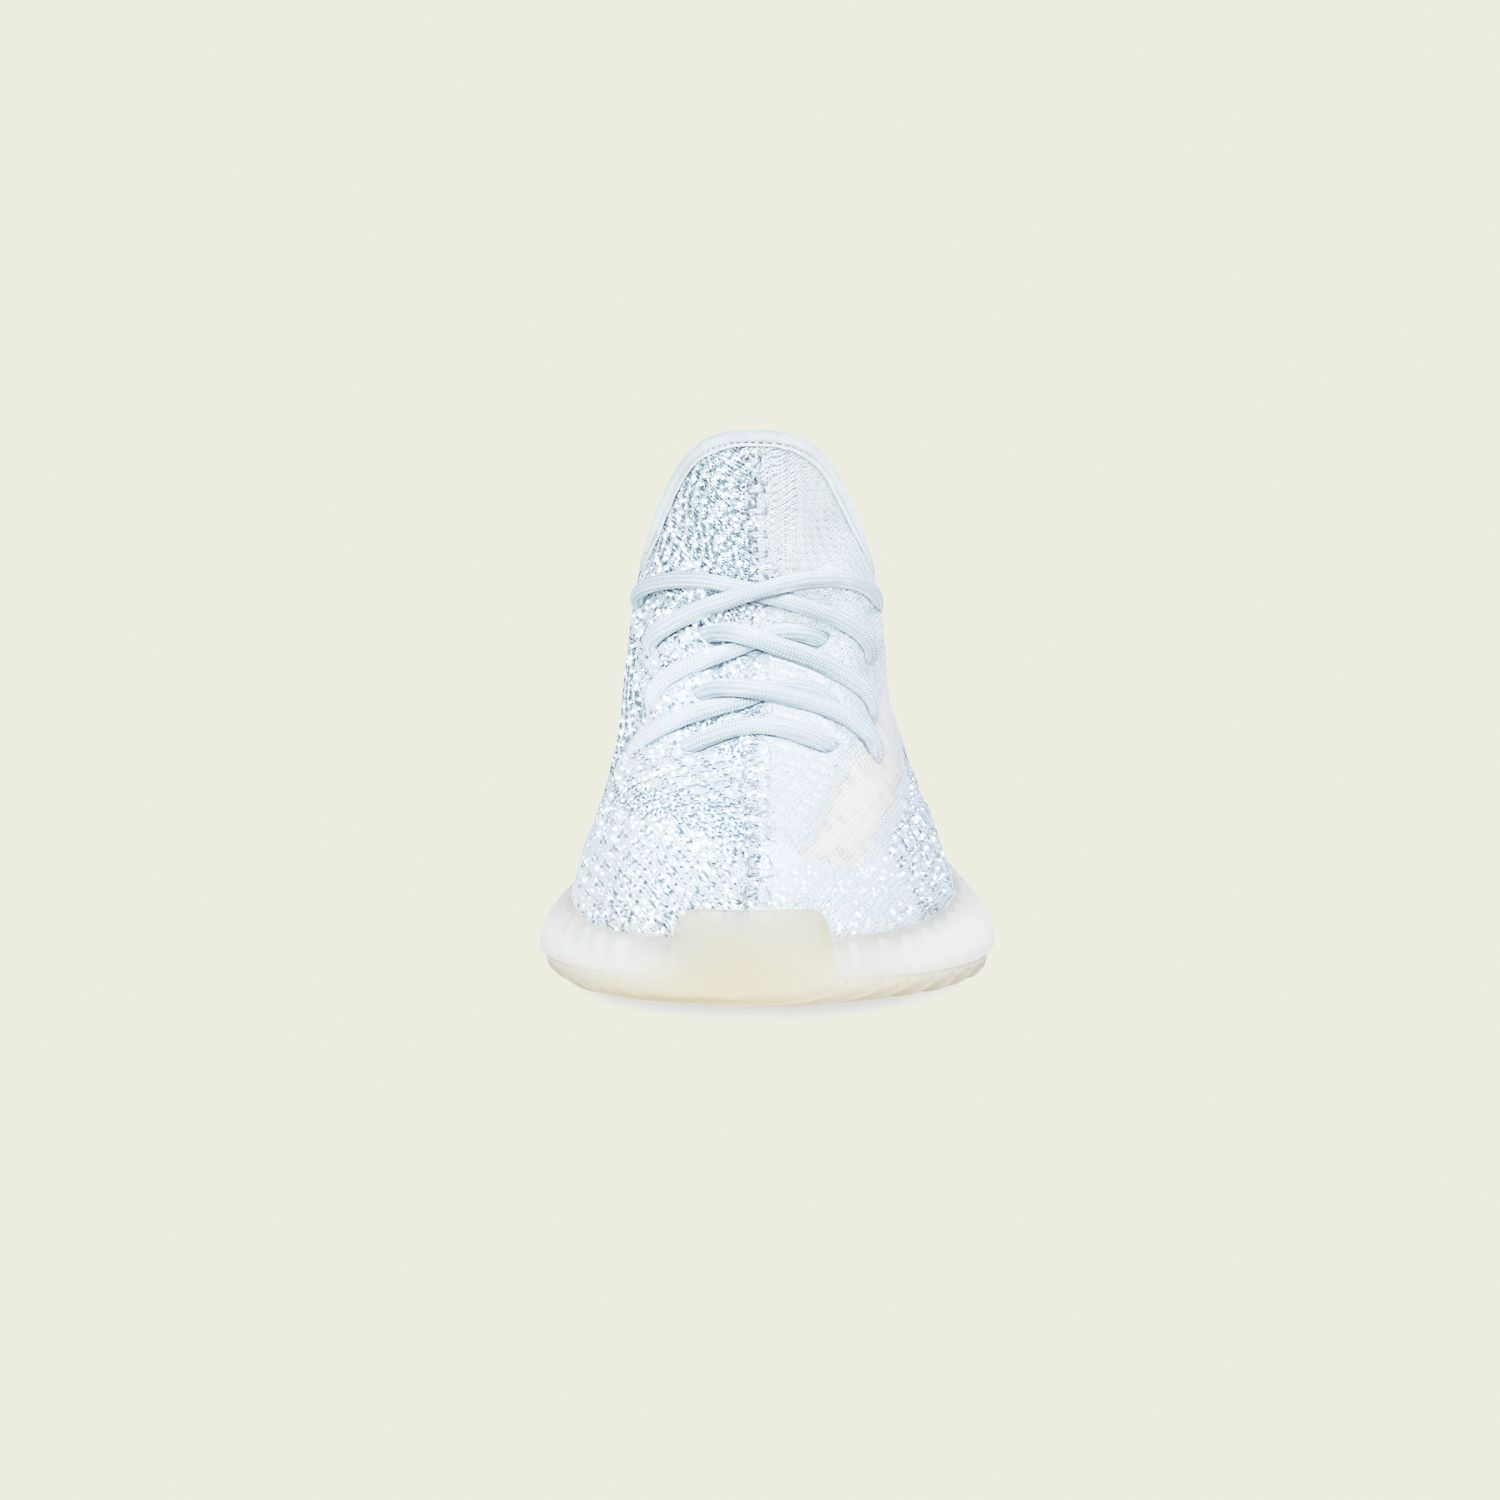 Yeezy Boost 350 V2 Cloud White (Reflective) [4]